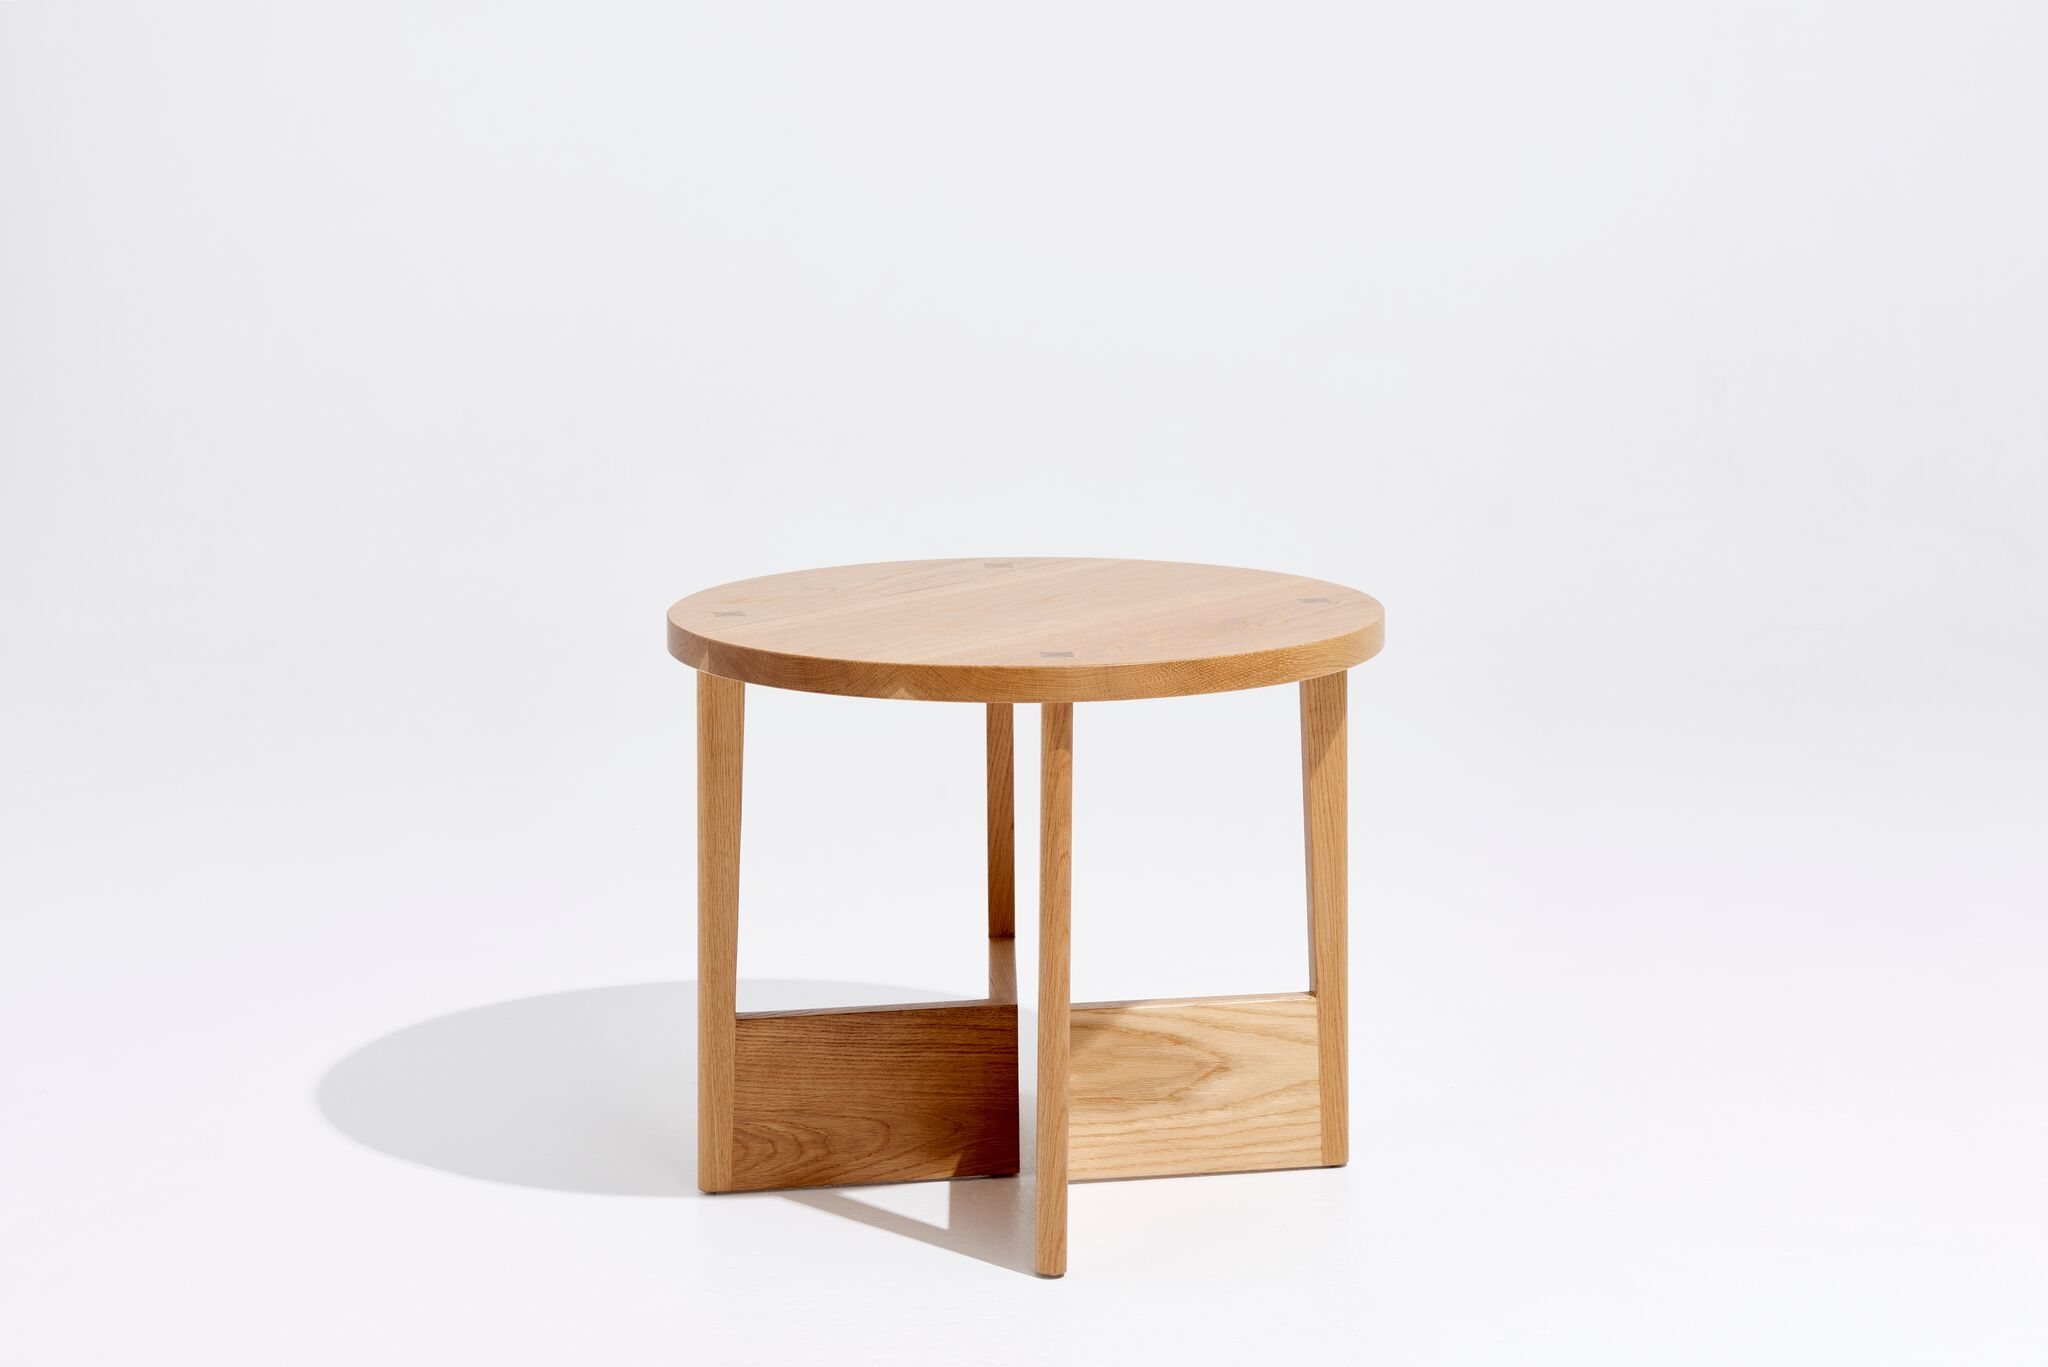 Gallery Of Of Across Table By Apparent Local Australian Furniture Design Sydney, Nsw Hero Image 4